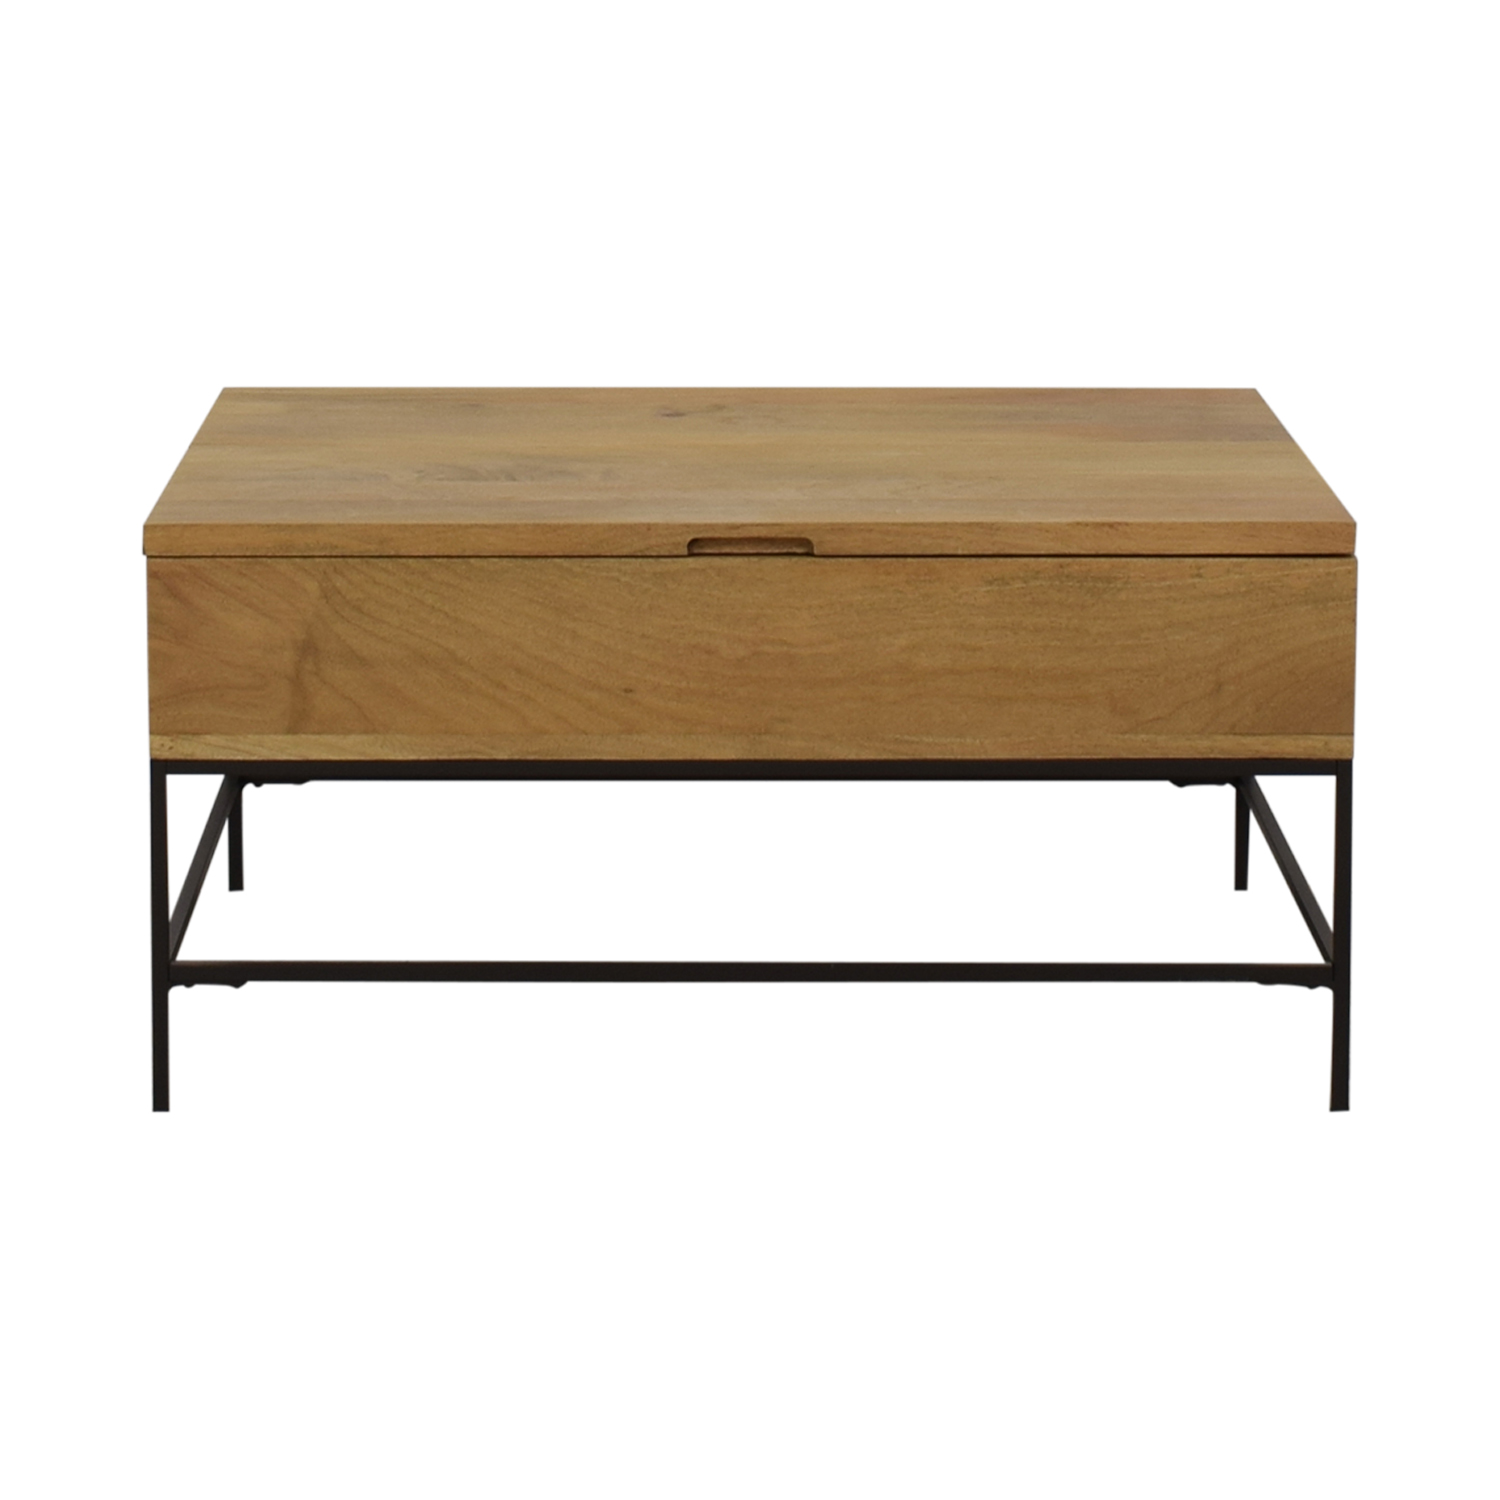 West Elm West Elm Industrial Storage Pop-Up Coffee Table coupon